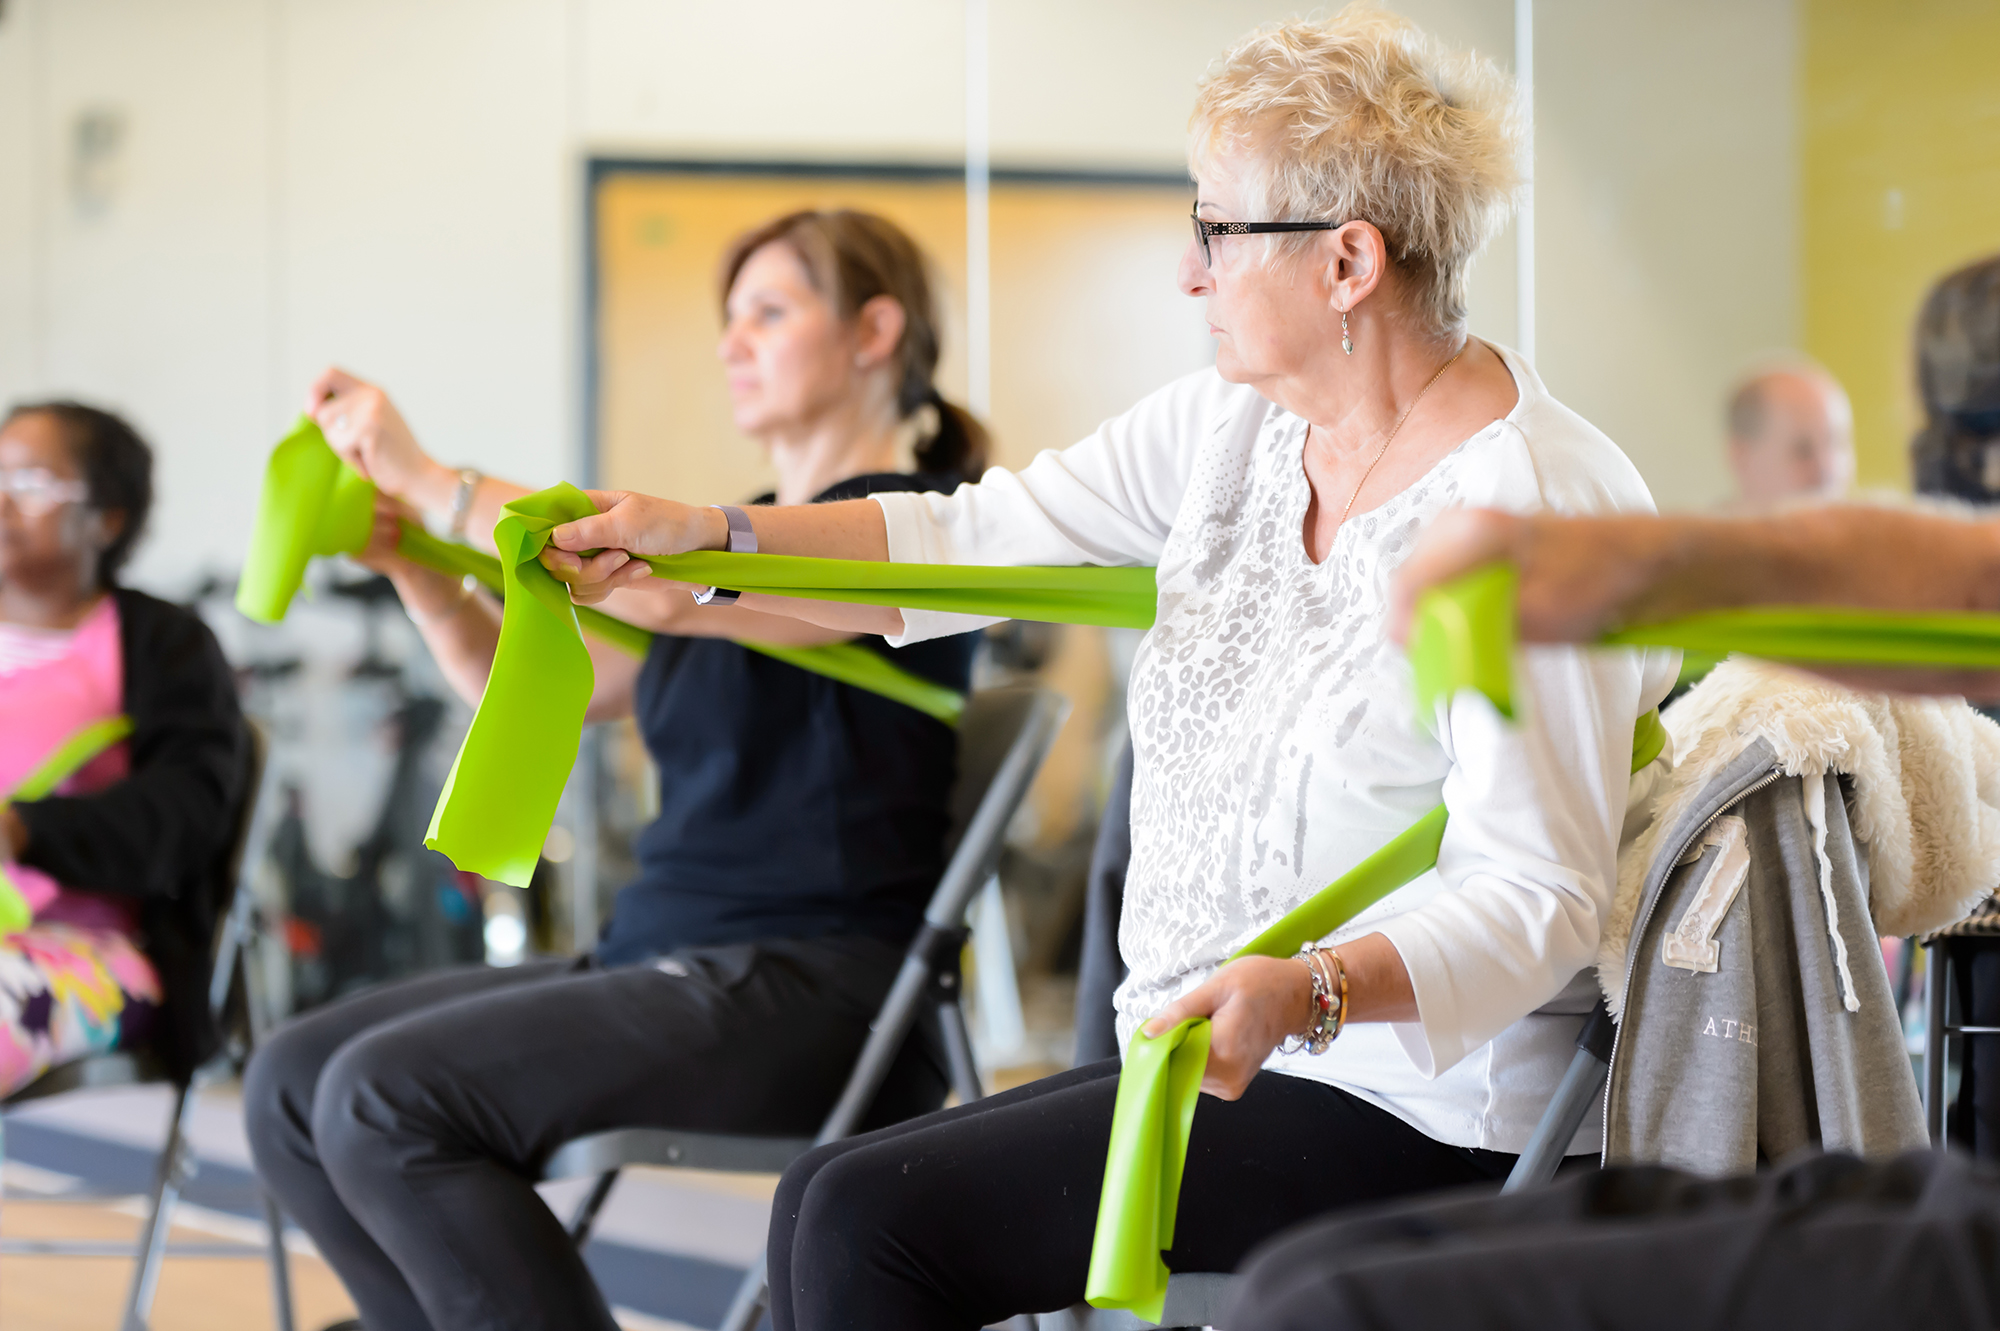 A group of adults perform seated exercise using resistance bands